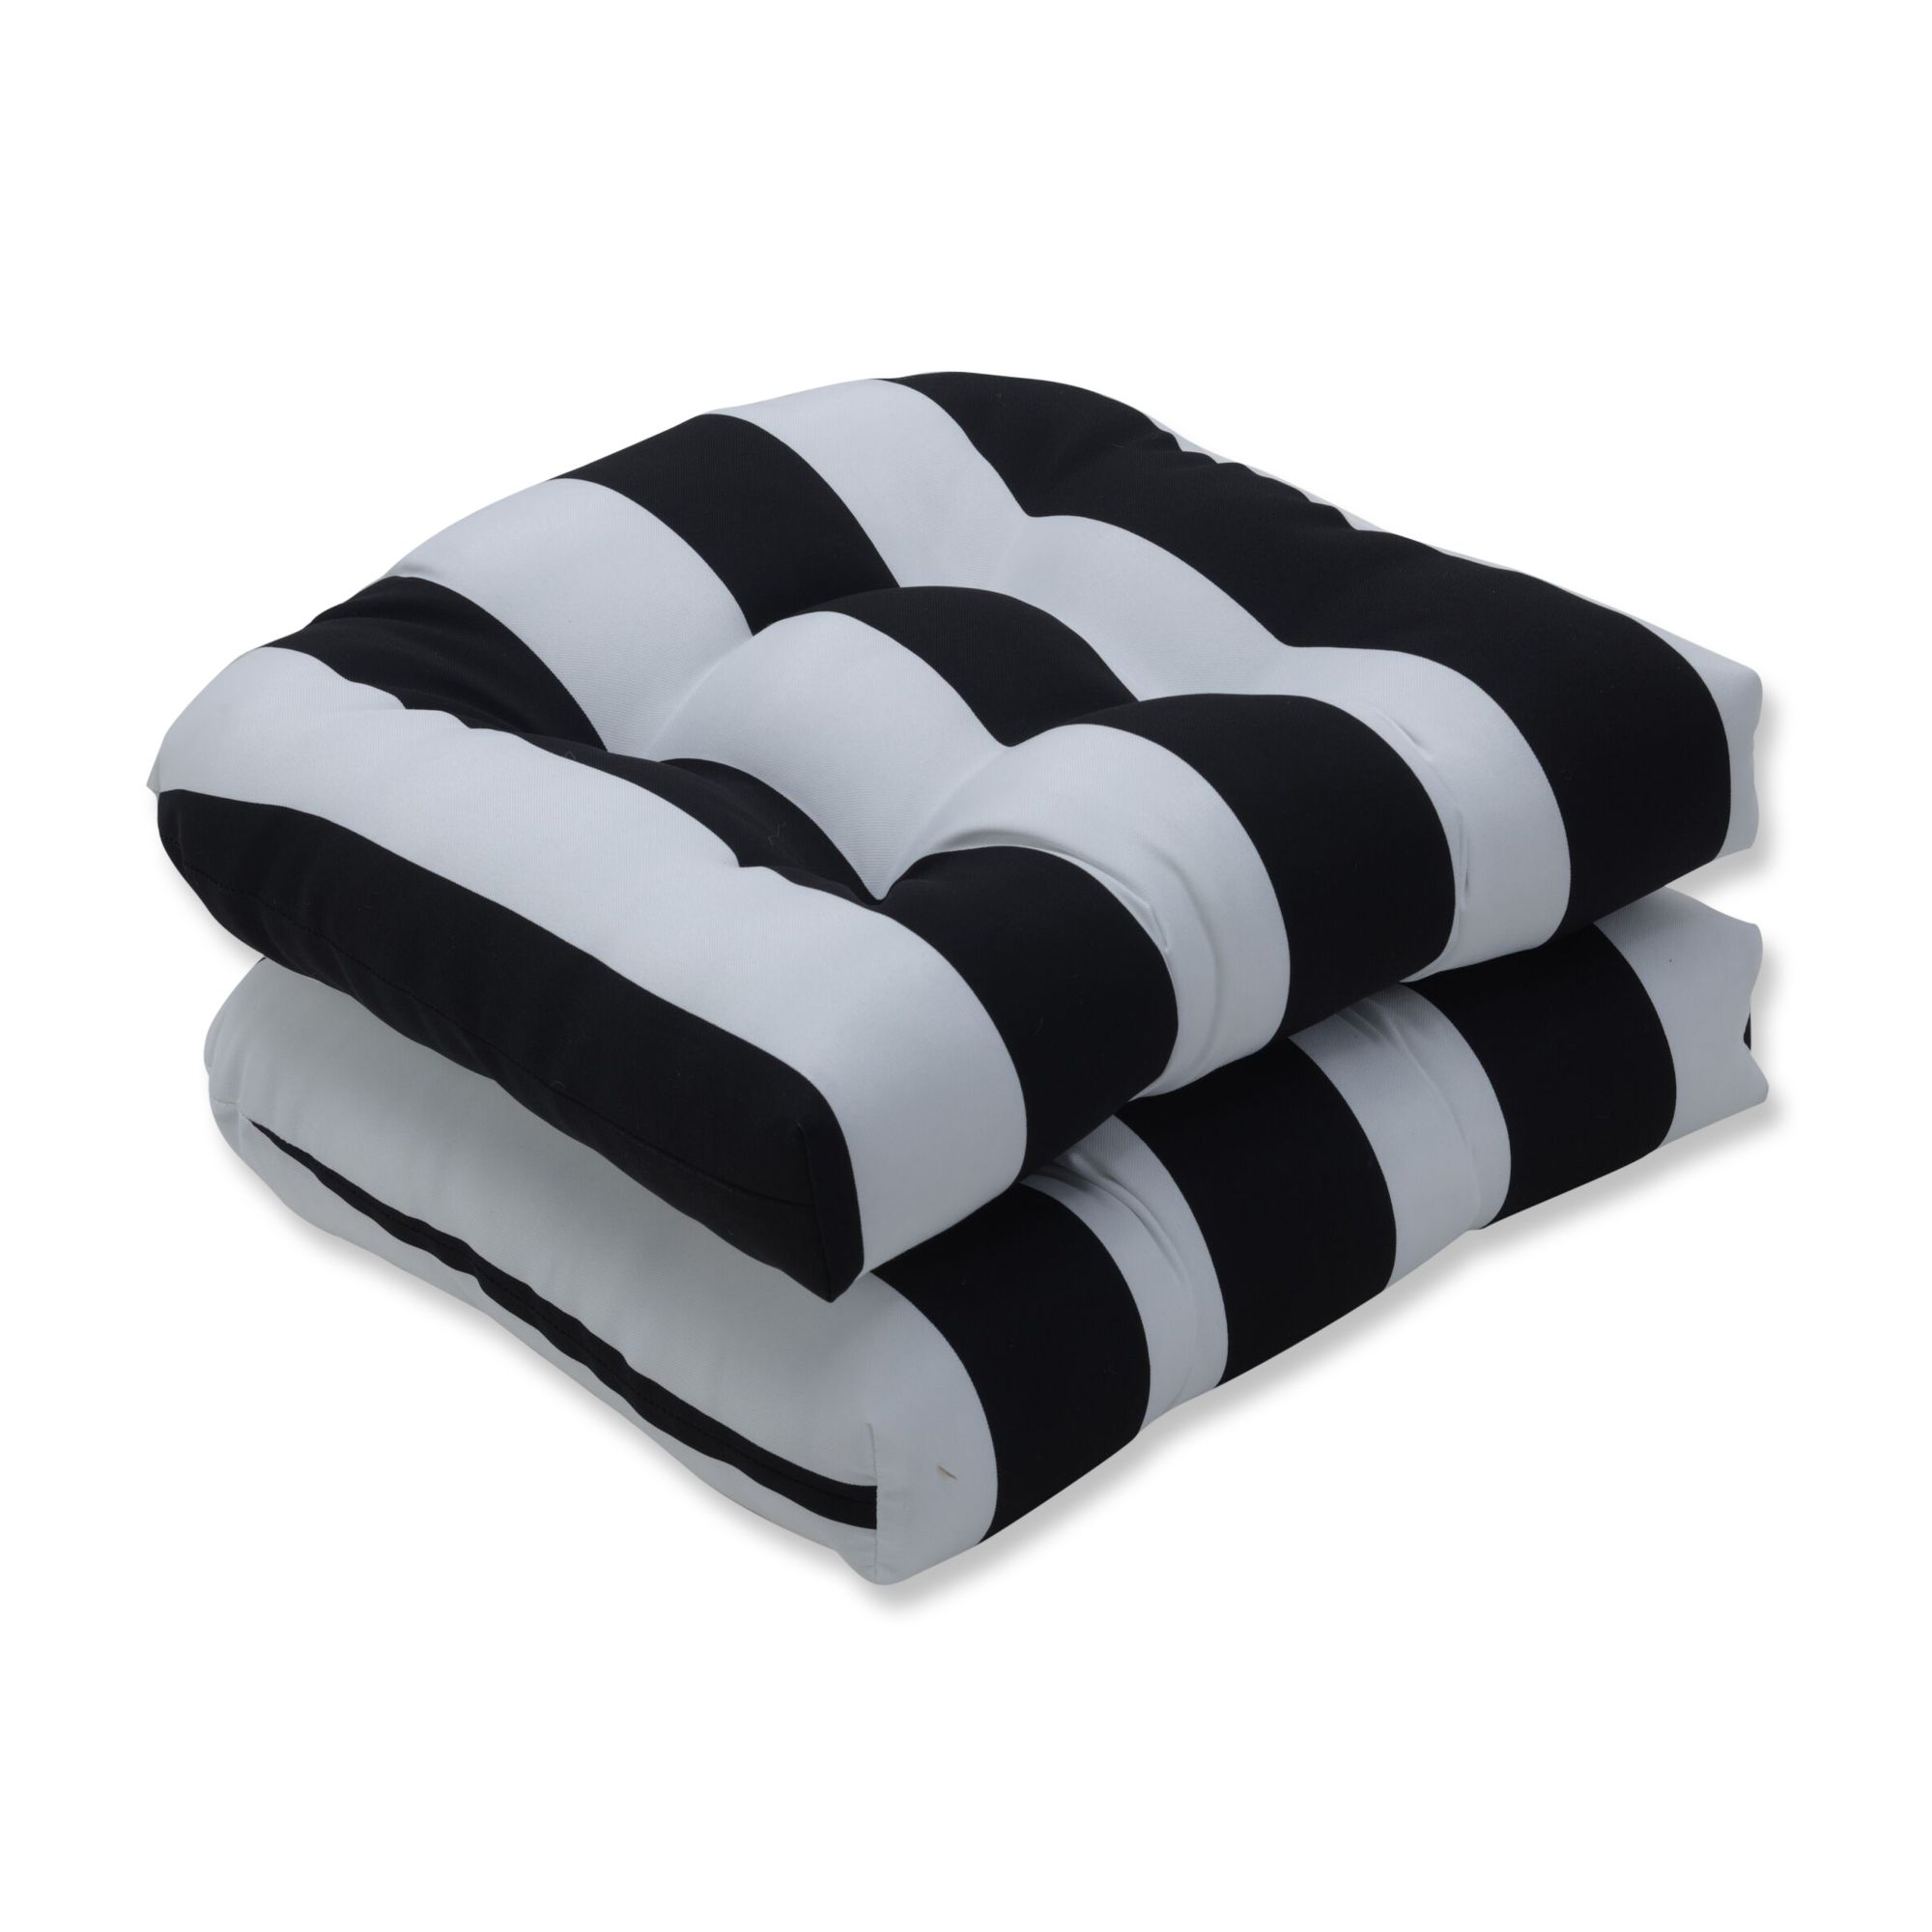 set of 2 black and white striped uv resistant outdoor on Black And White Striped Outdoor Seat Cushions id=13644